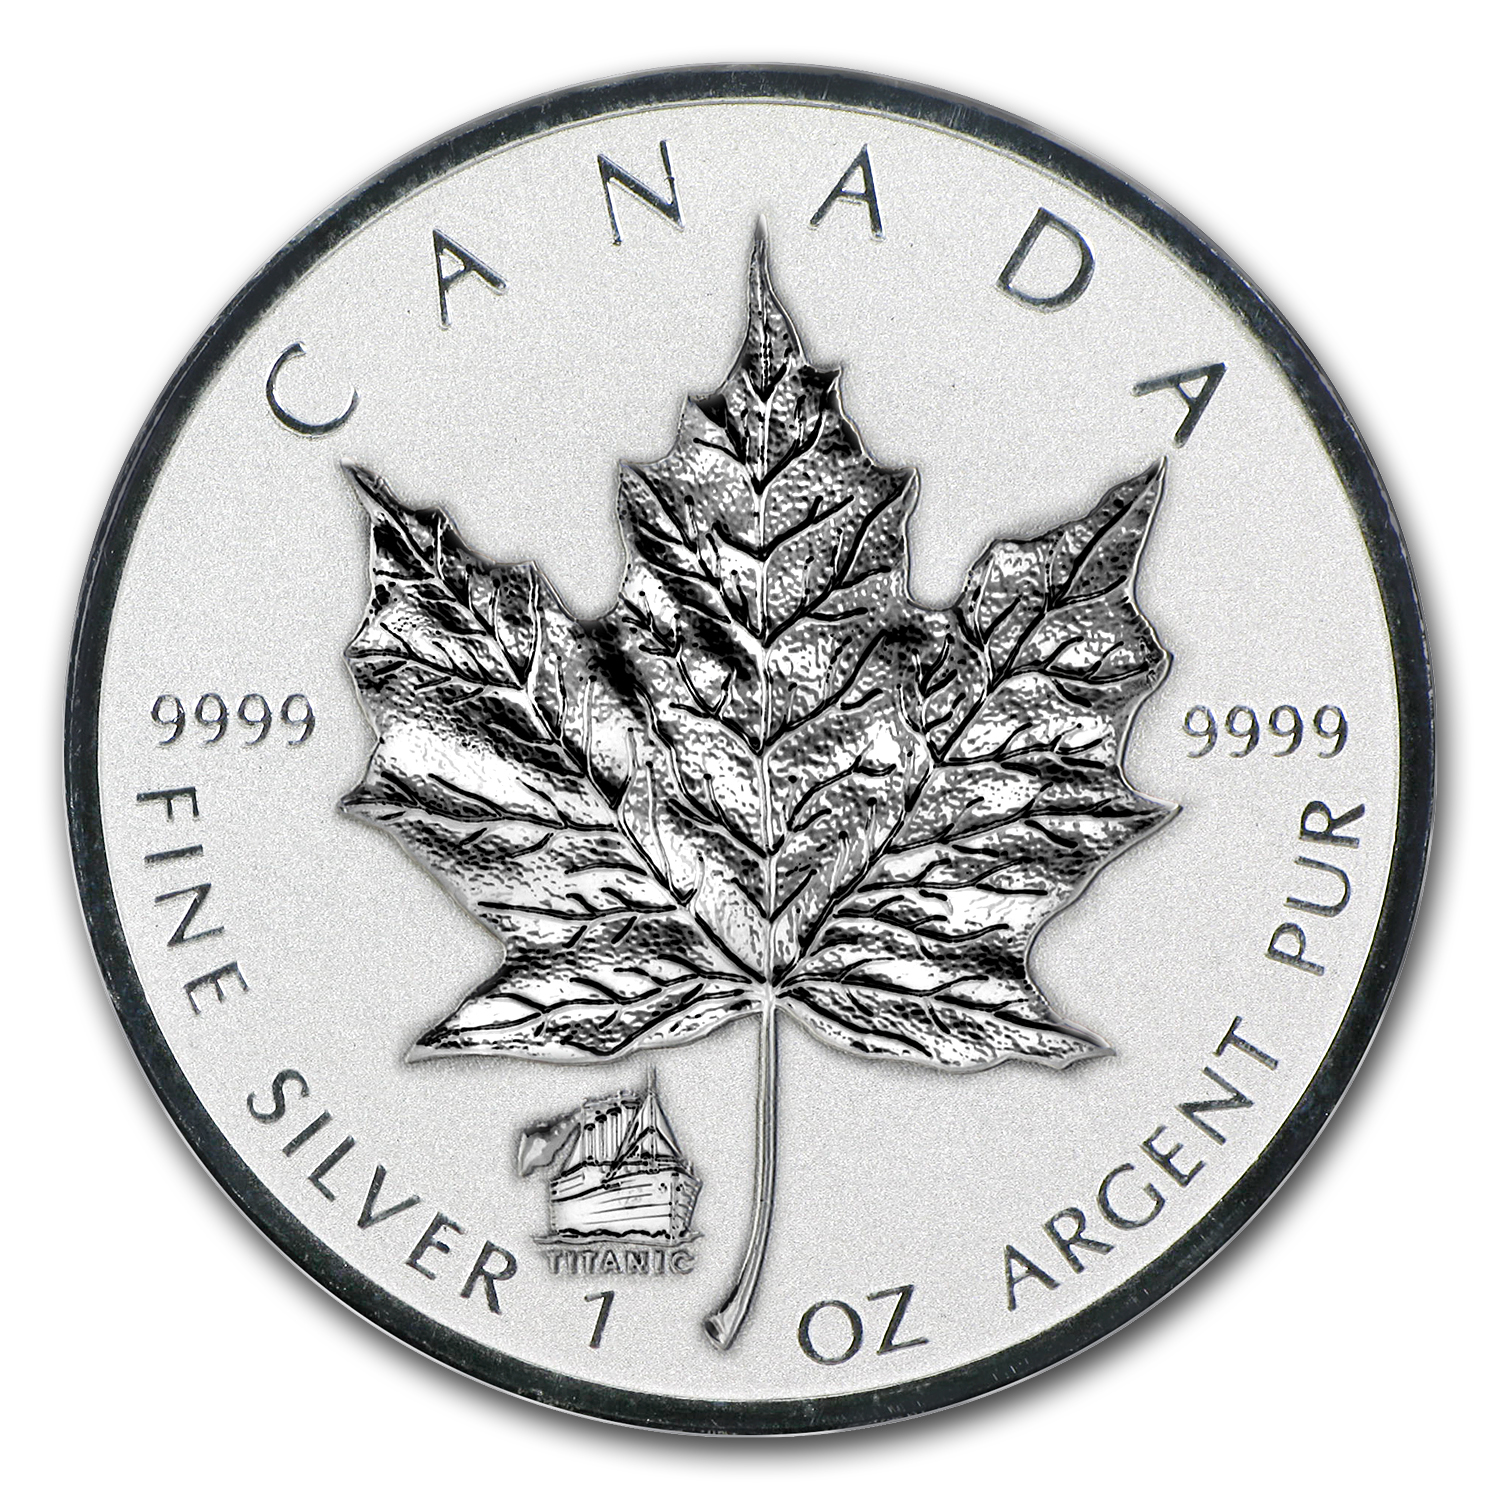 2012 Canada 1 oz Silver Maple Leaf Titanic Privy